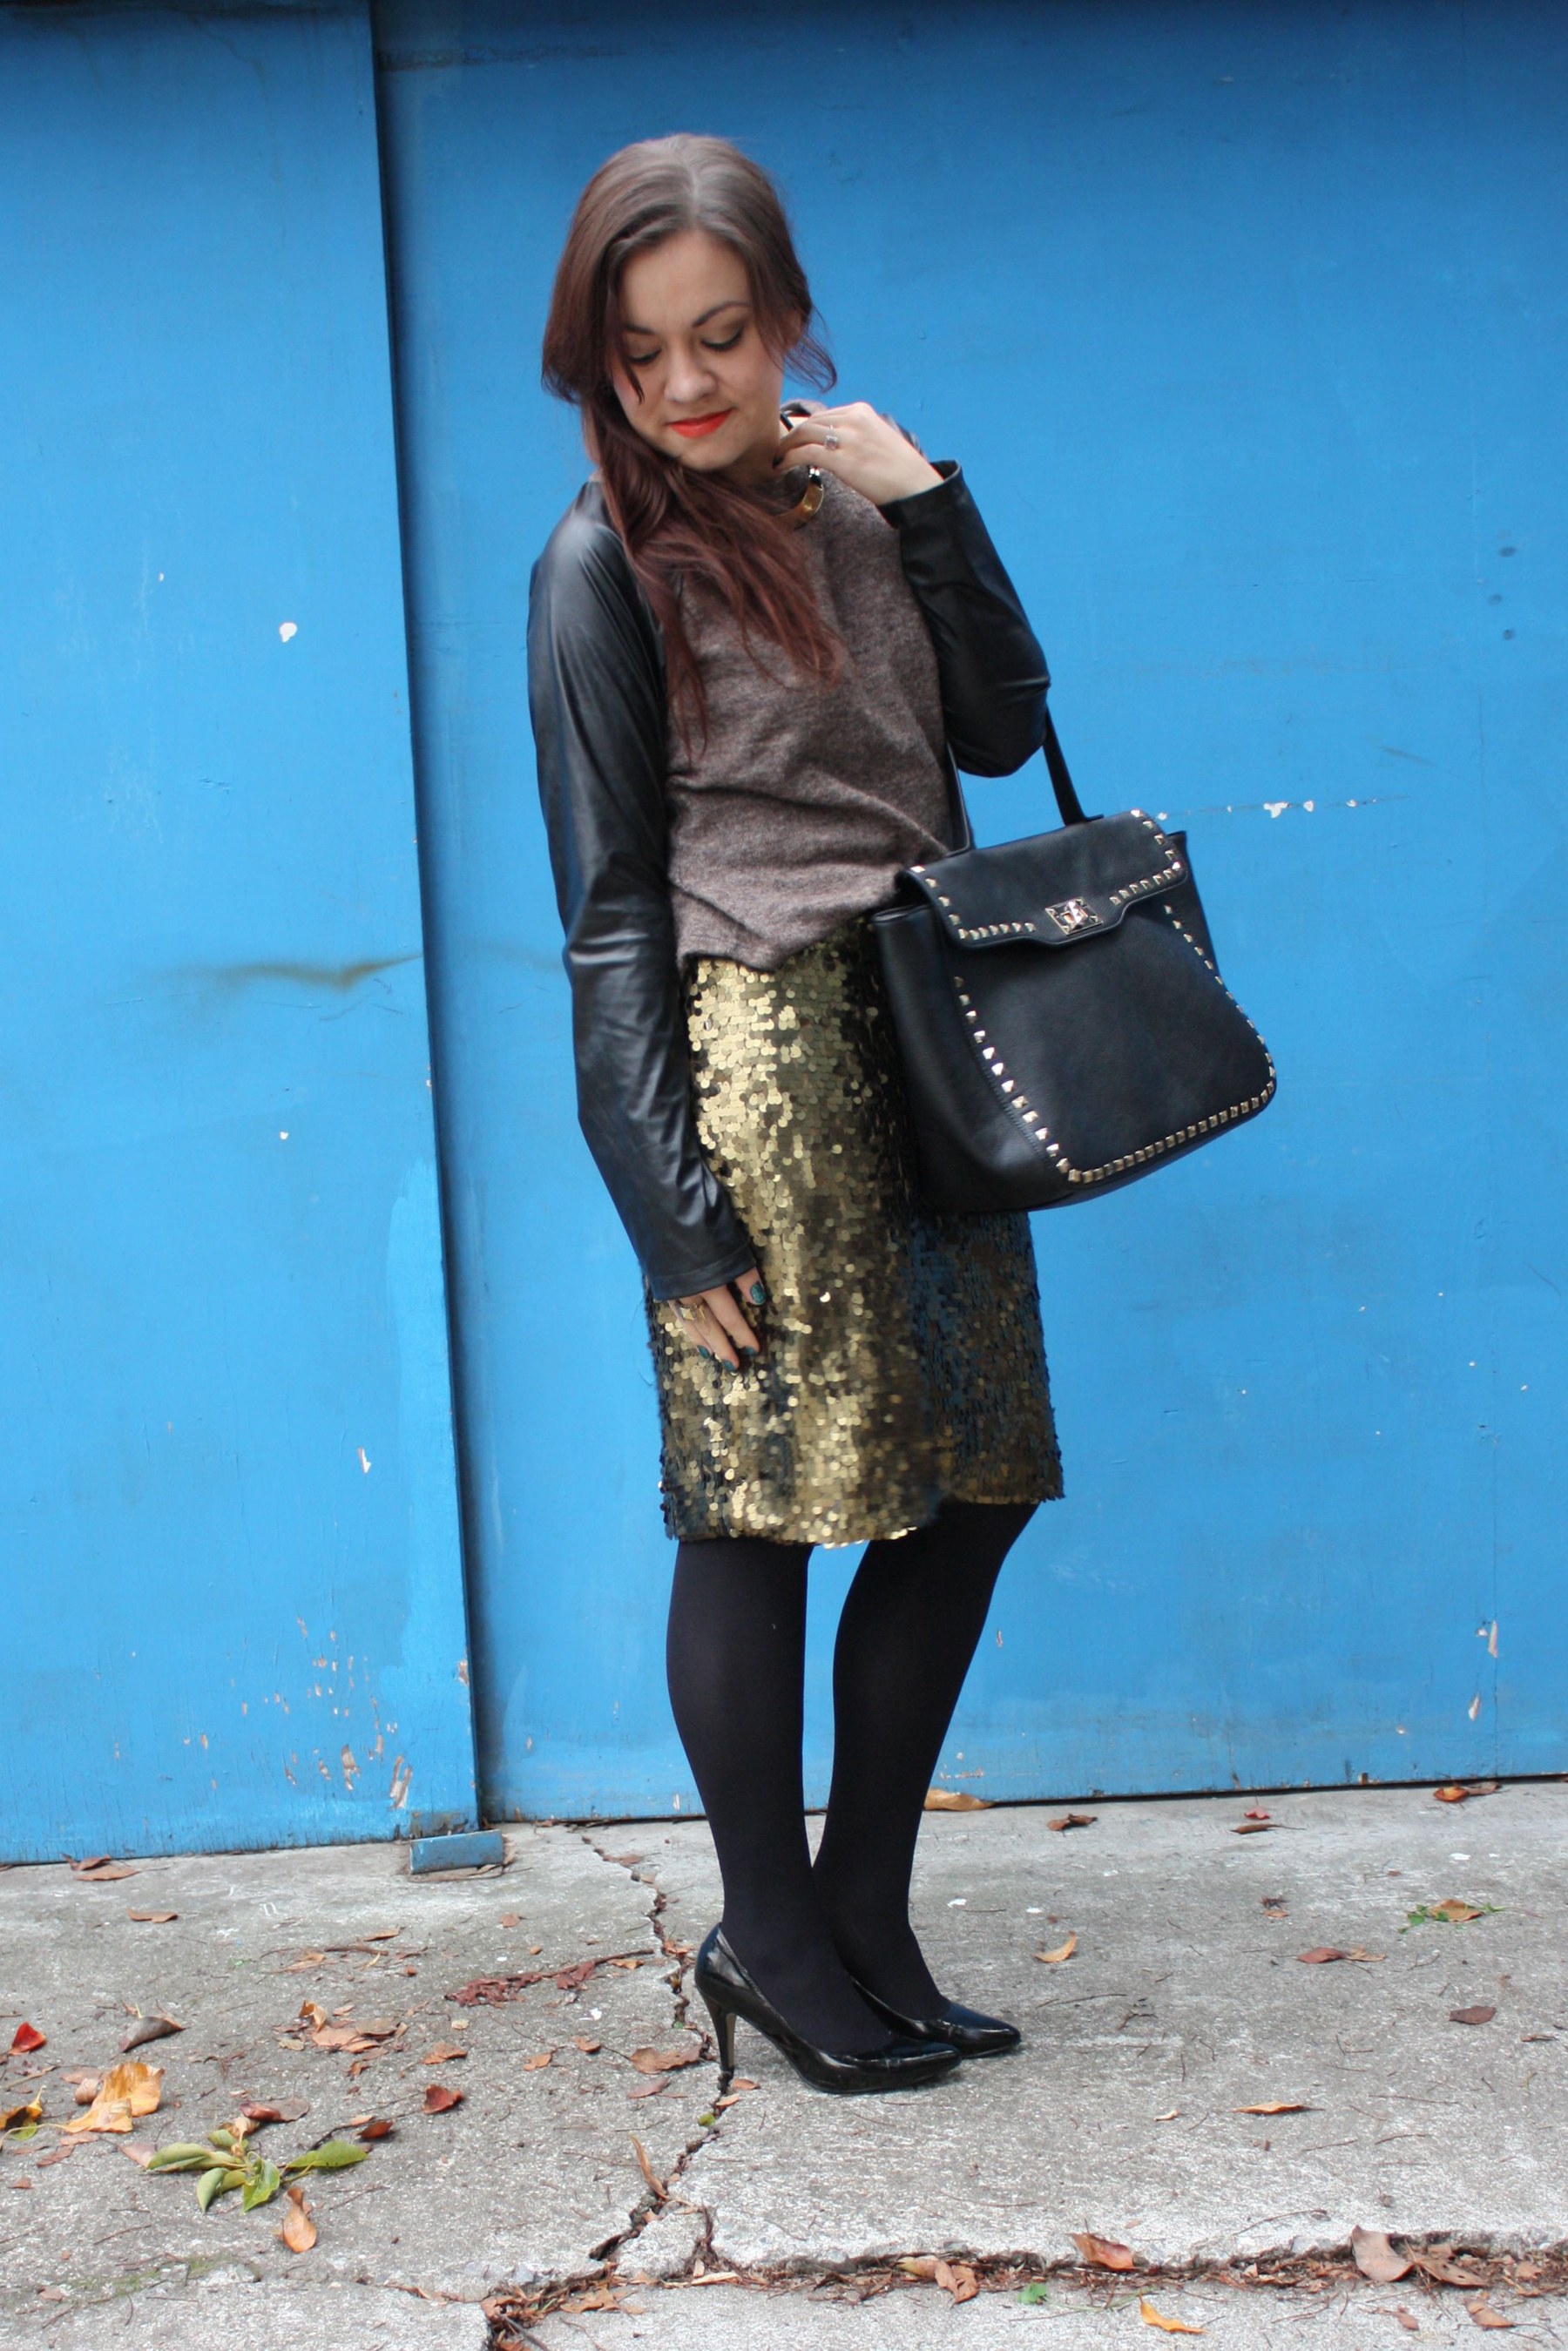 sequin pencil skirt - leather sleeve raglan sweater - studded trim tote - tights - ankle boots06